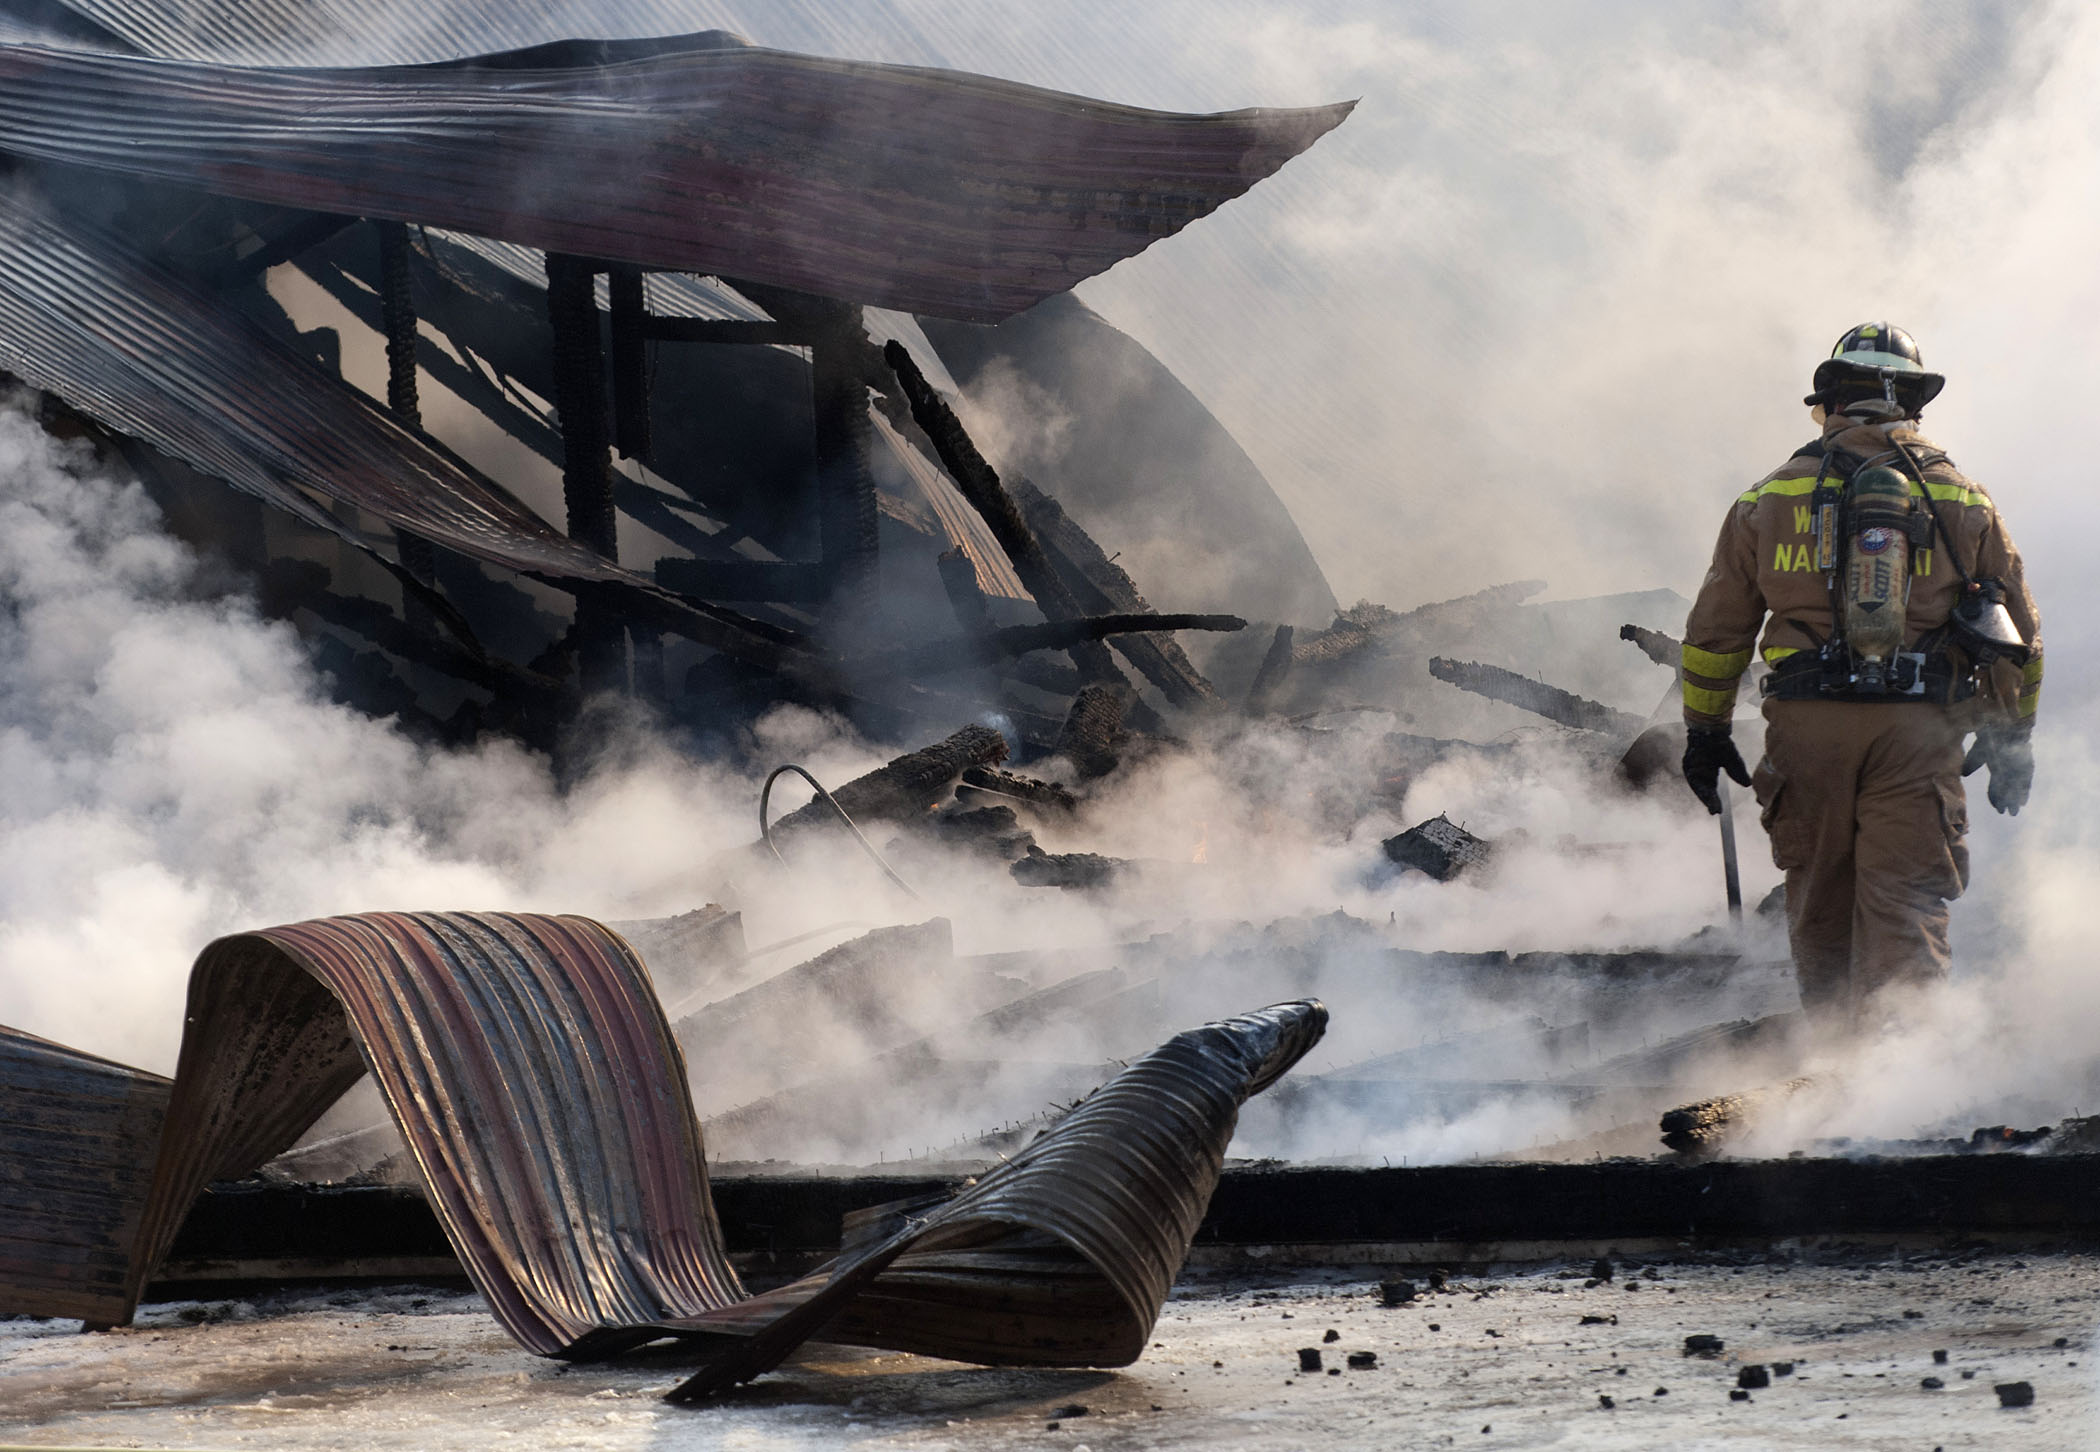 A firefighter walks through debris as firefighters work to keep flames under control at a barn fire on County Rd. in Walpole, N.H. on Friday, January 3rd.